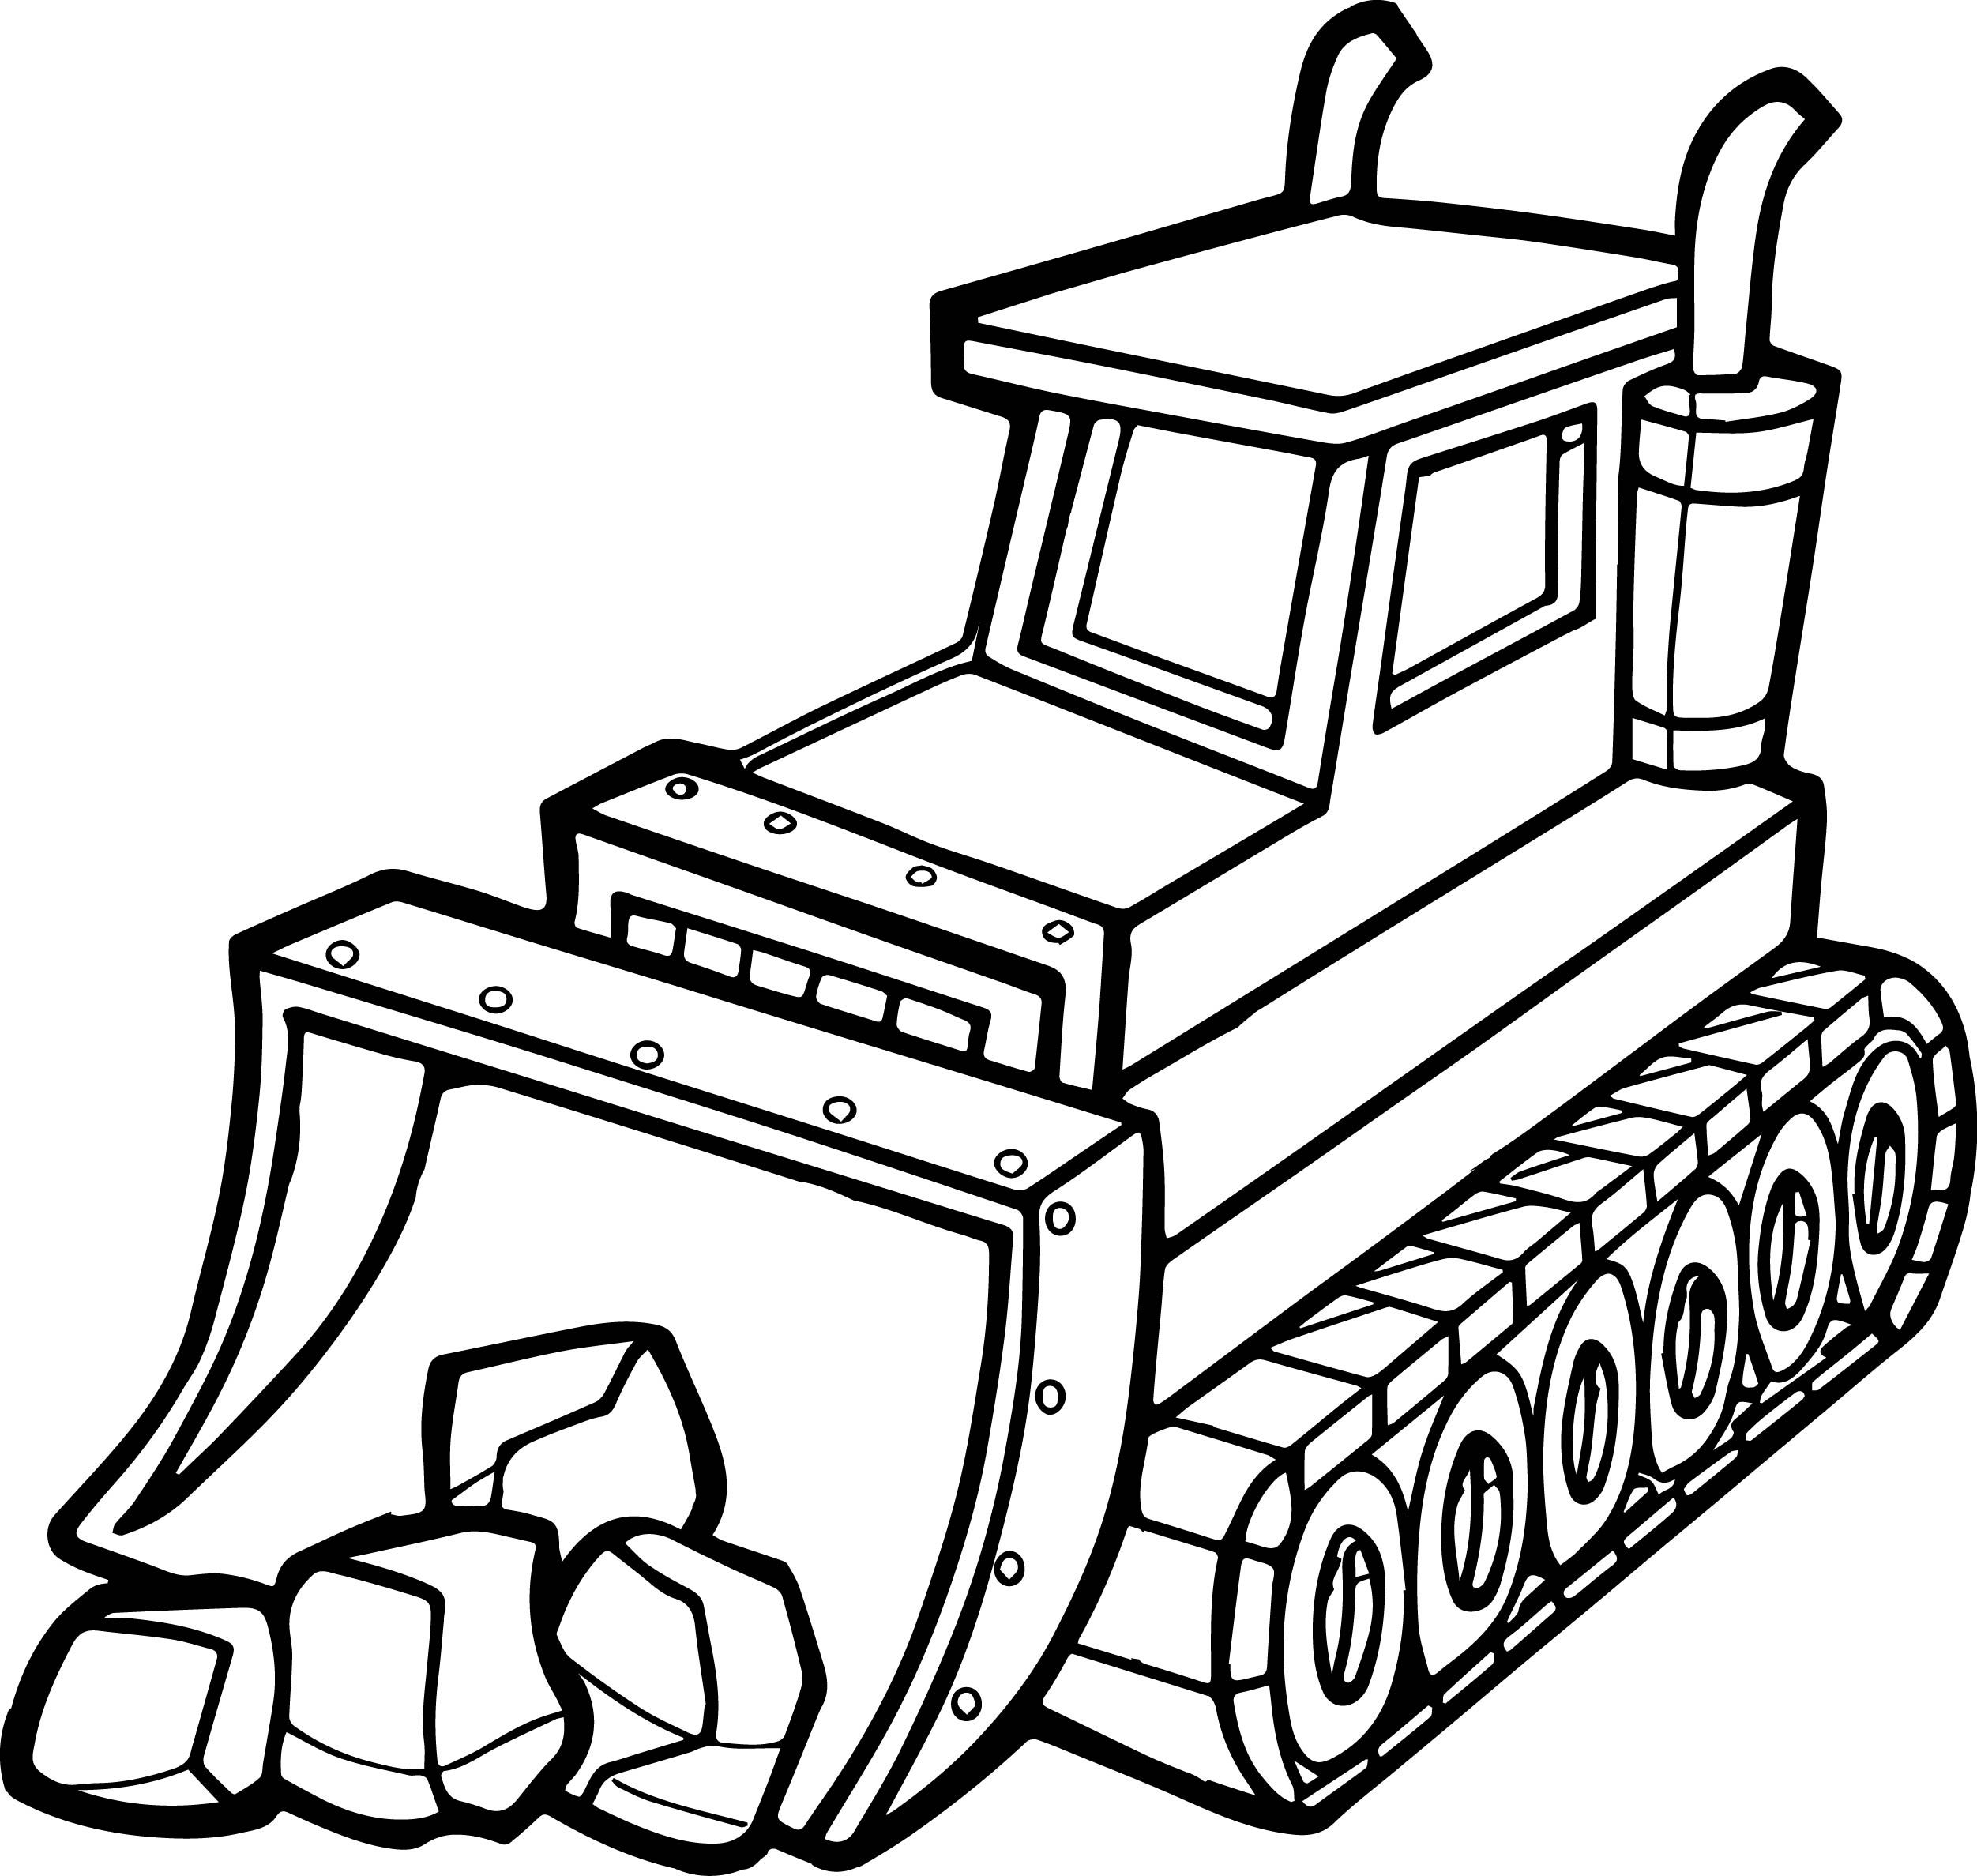 cool Best Stone Shovel Bulldozer Coloring Page Truck